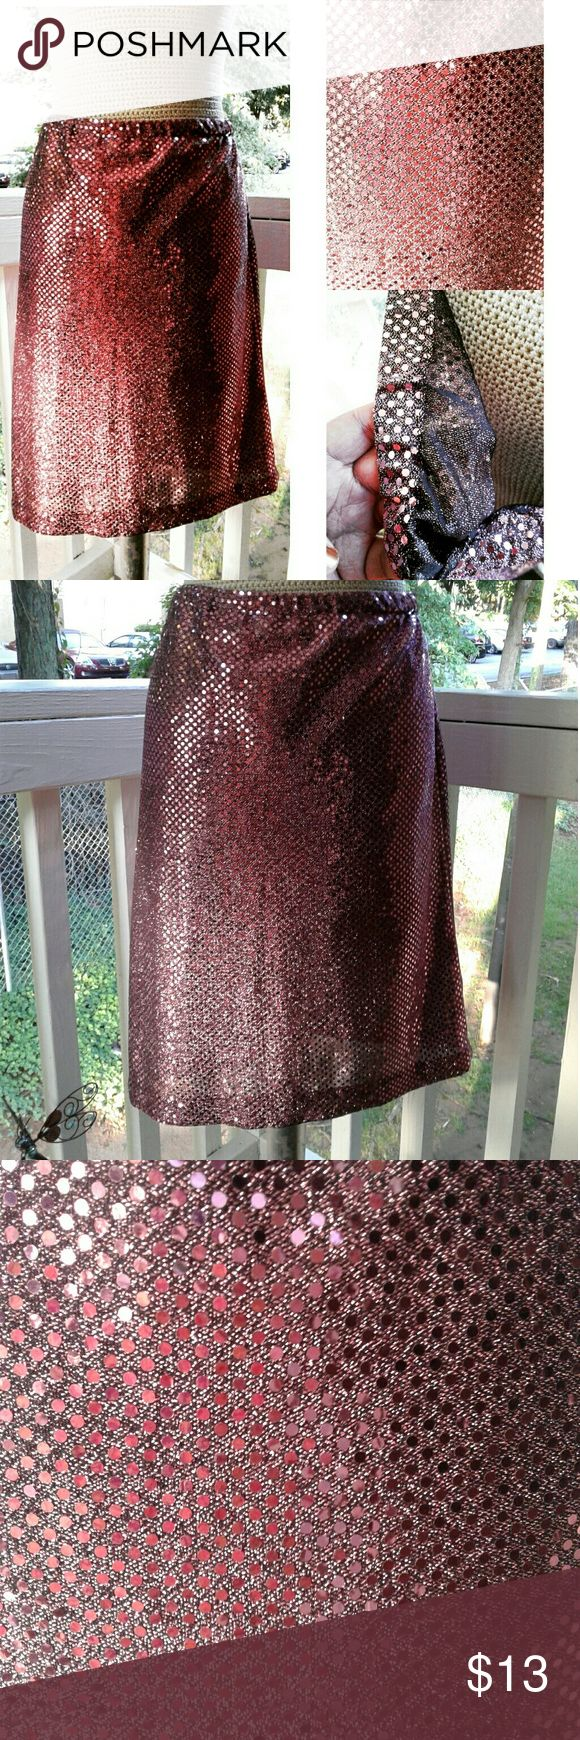 Pink Sequin Pencil Skirt Pink Sequin Pencil Skirt handmade  Skirts Pencil